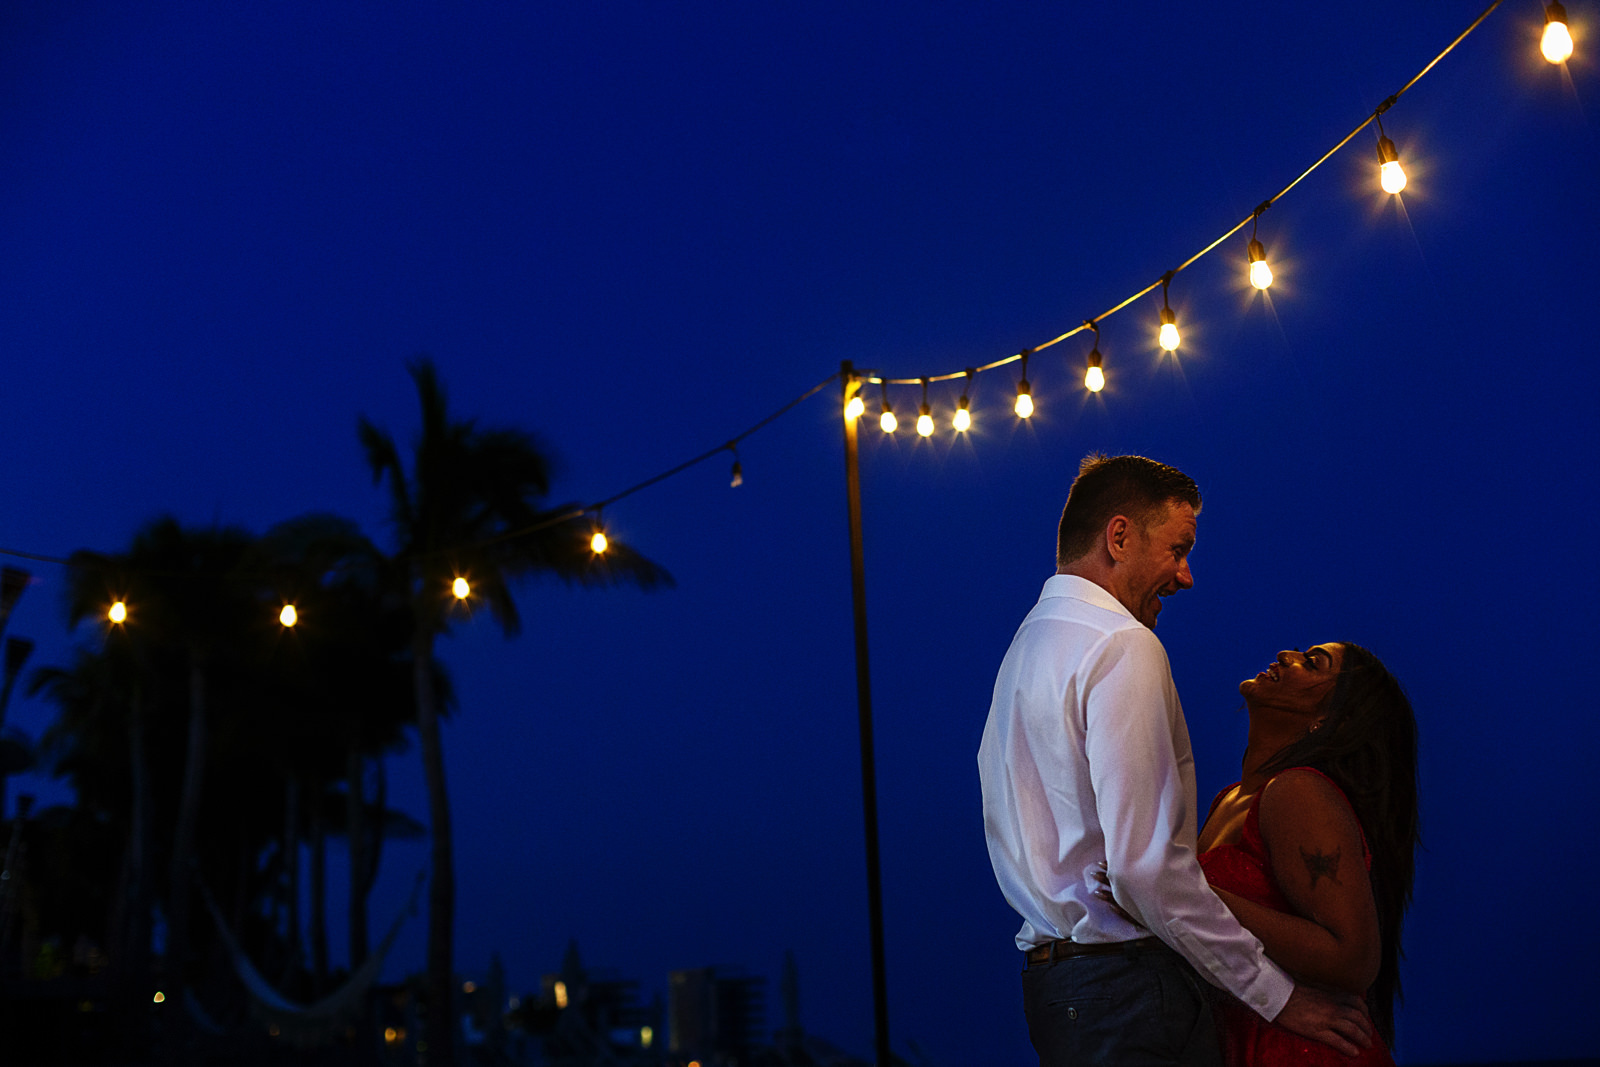 Couple facing at each other under light bulbs against the blue sky at night